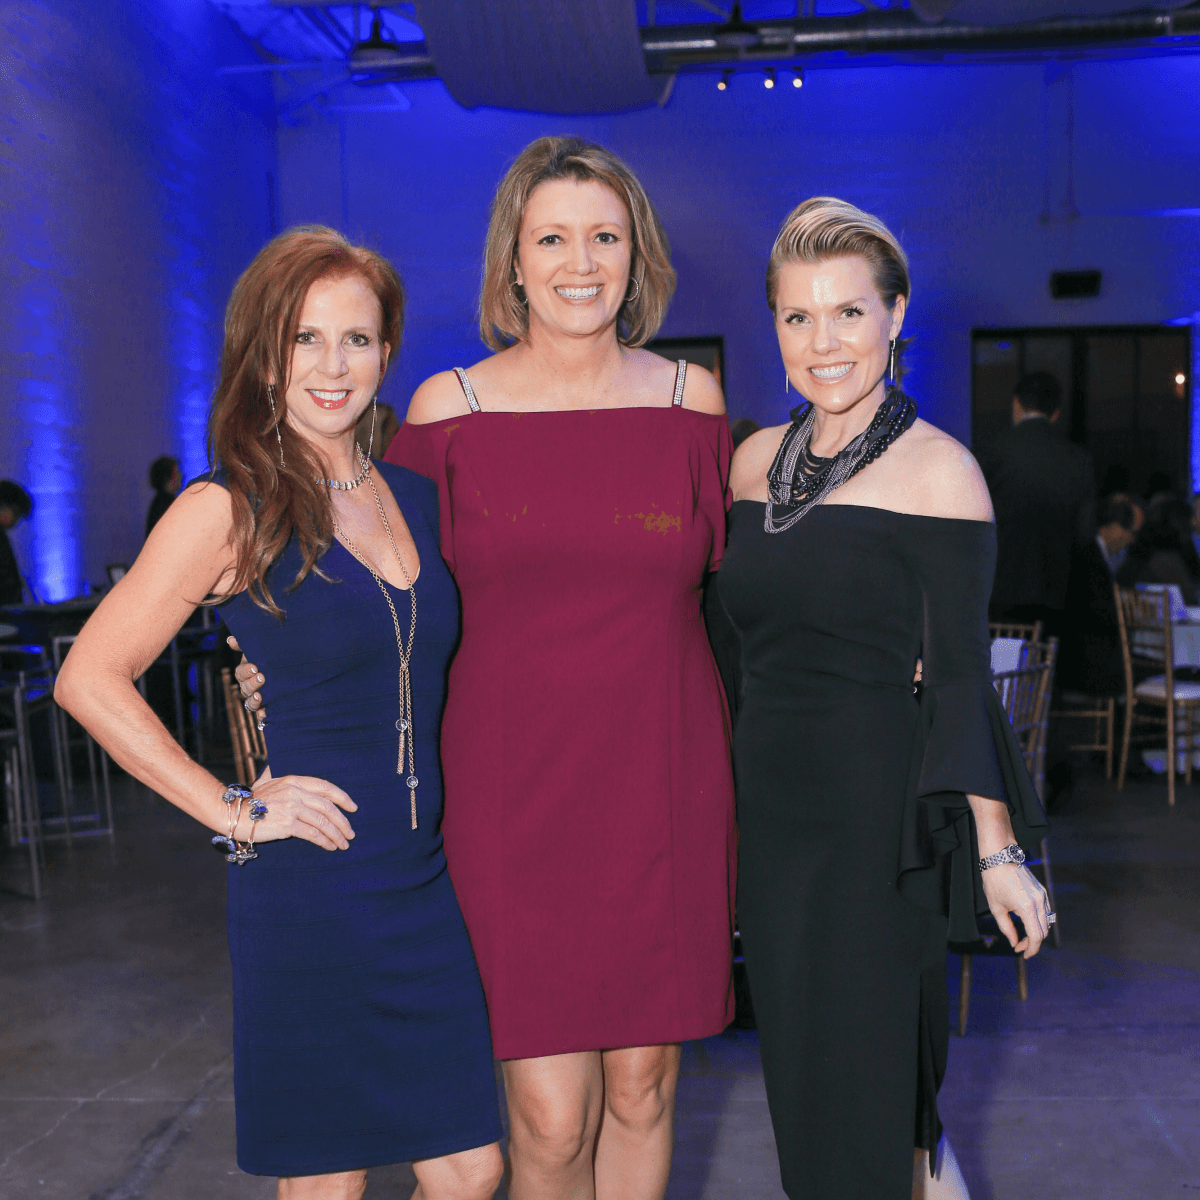 7 th  Annual Gala co-chairs Elizabeth Weathersby and Melissa Green  with  Lana  Byrne, honorary chair